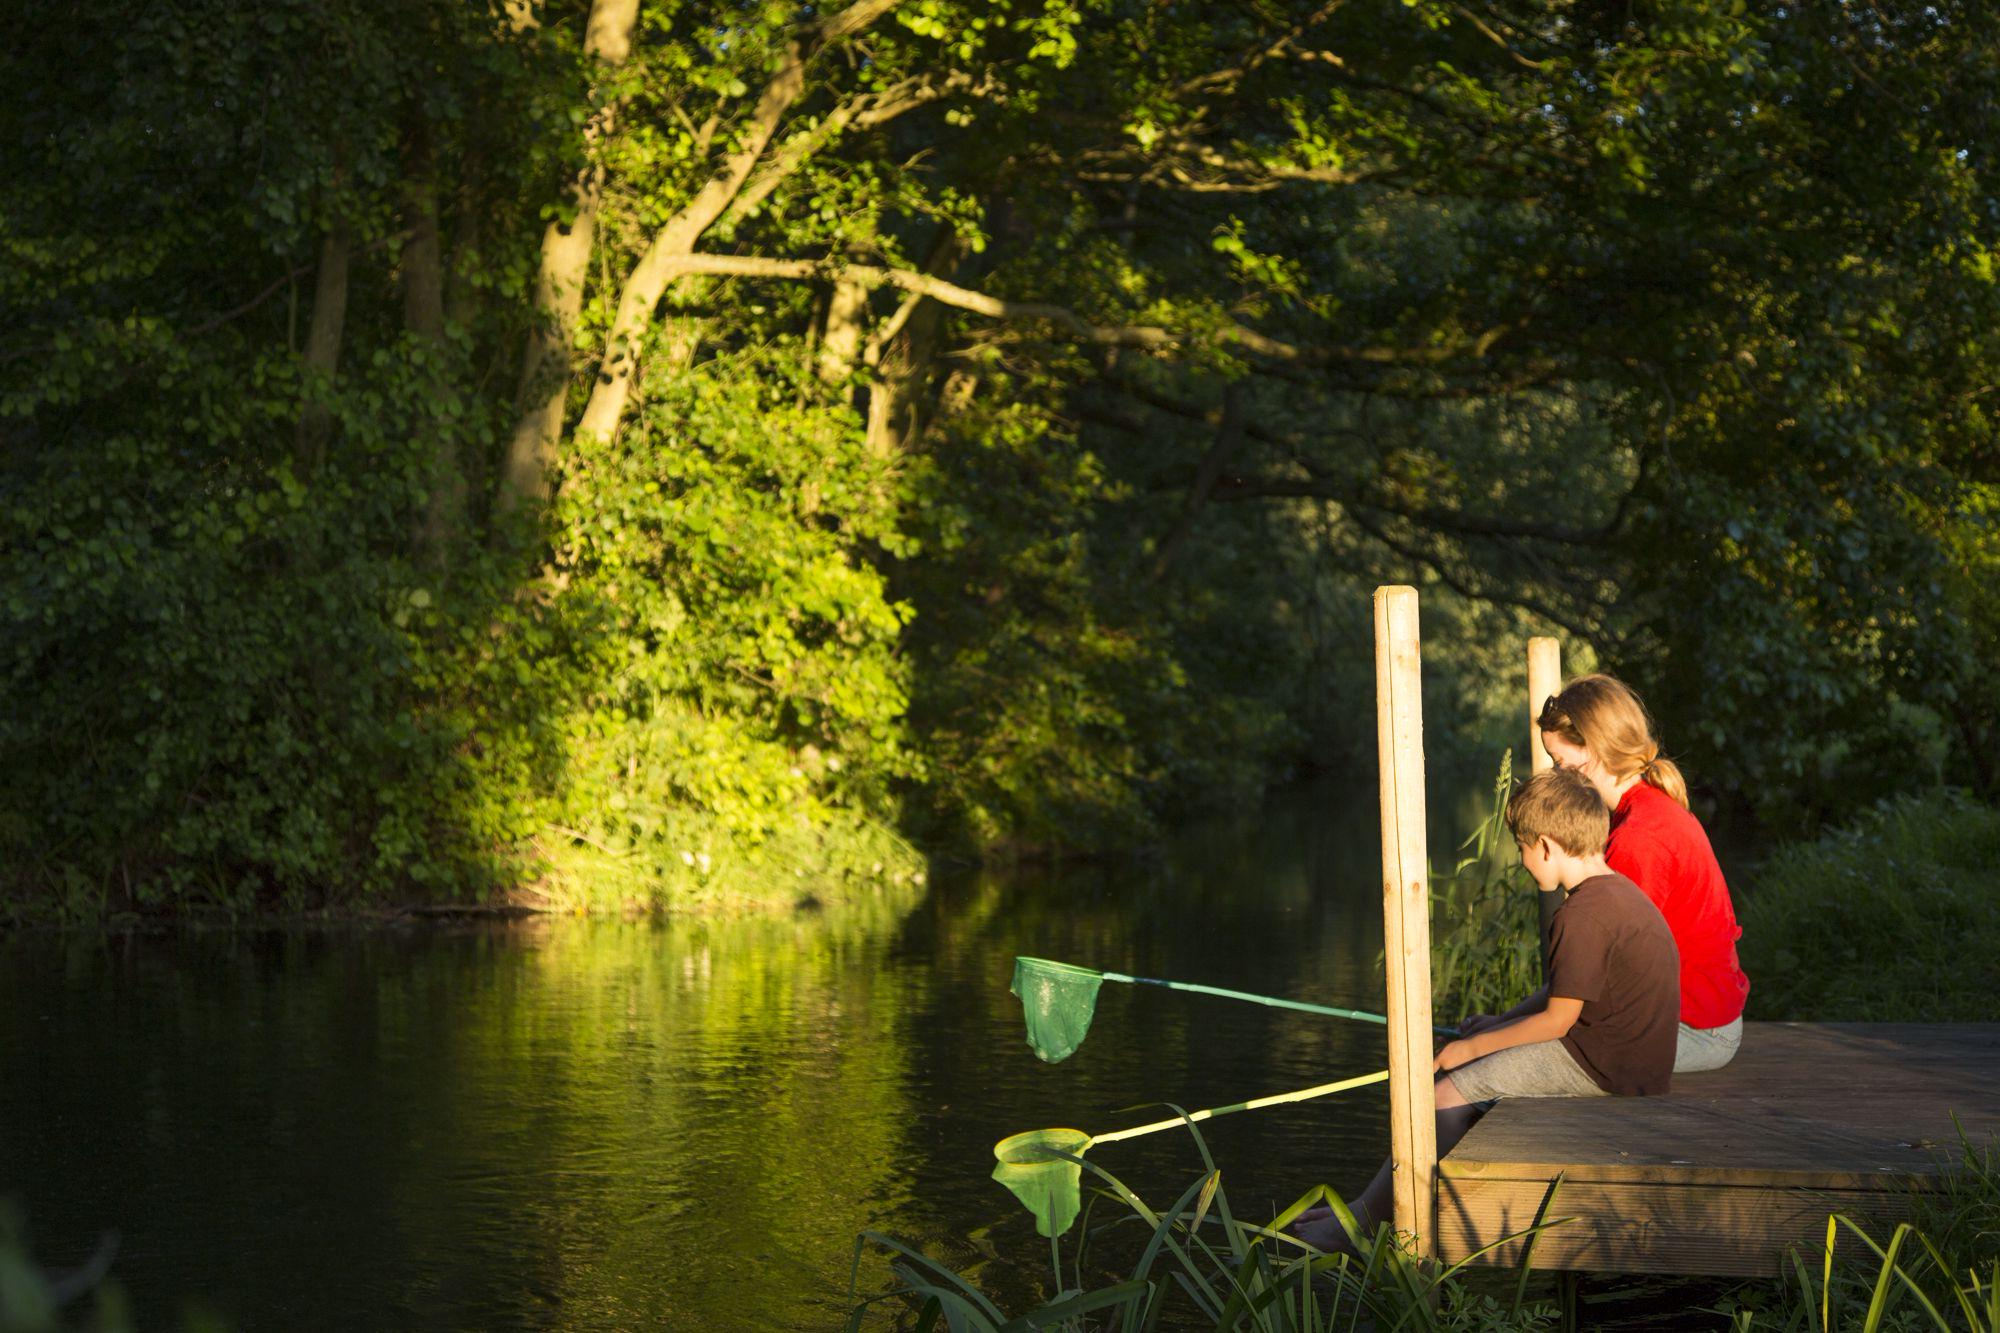 Pewsey Camping | Campsites Near Pewsey, Wiltshire